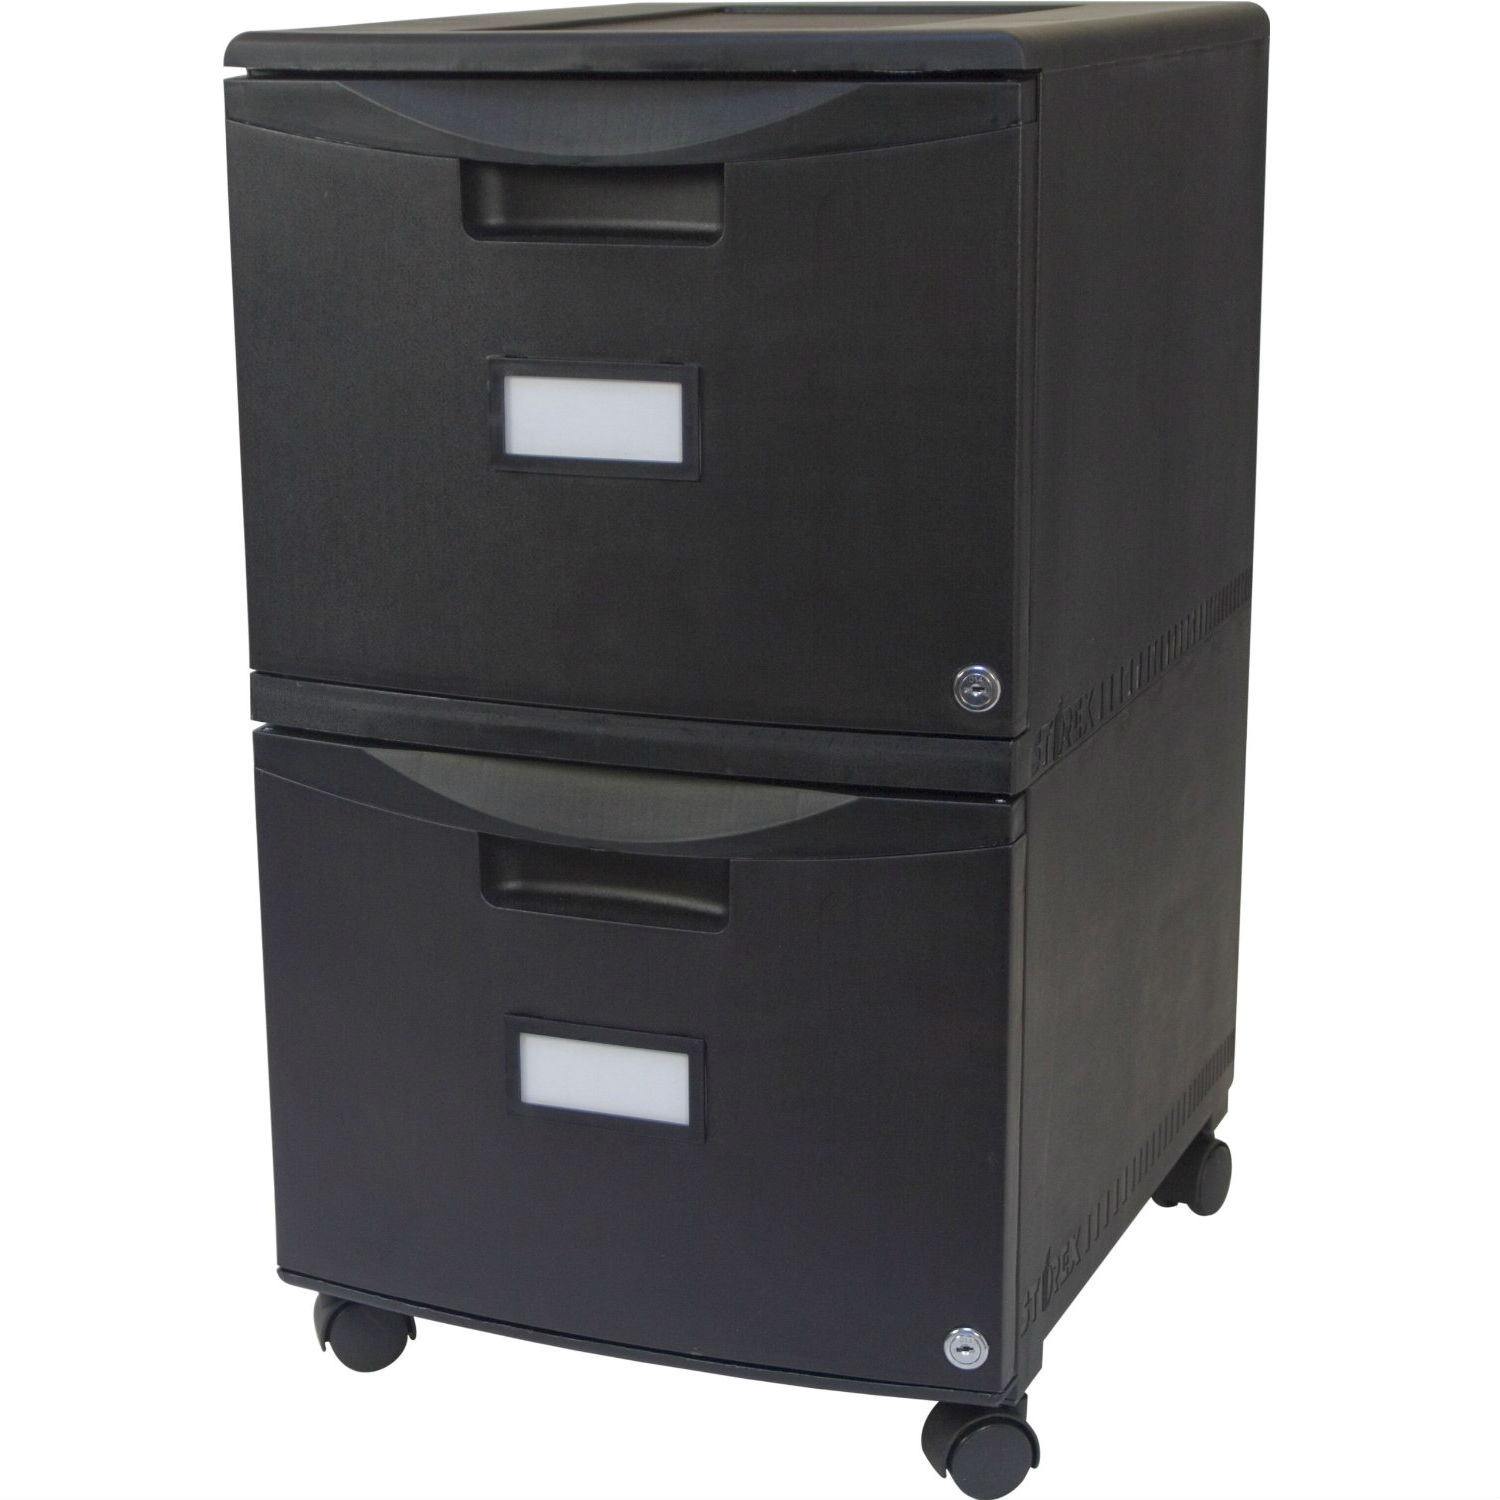 black 2-drawer locking letter/legal size file cabinet with casters 1 drawer file cabinet